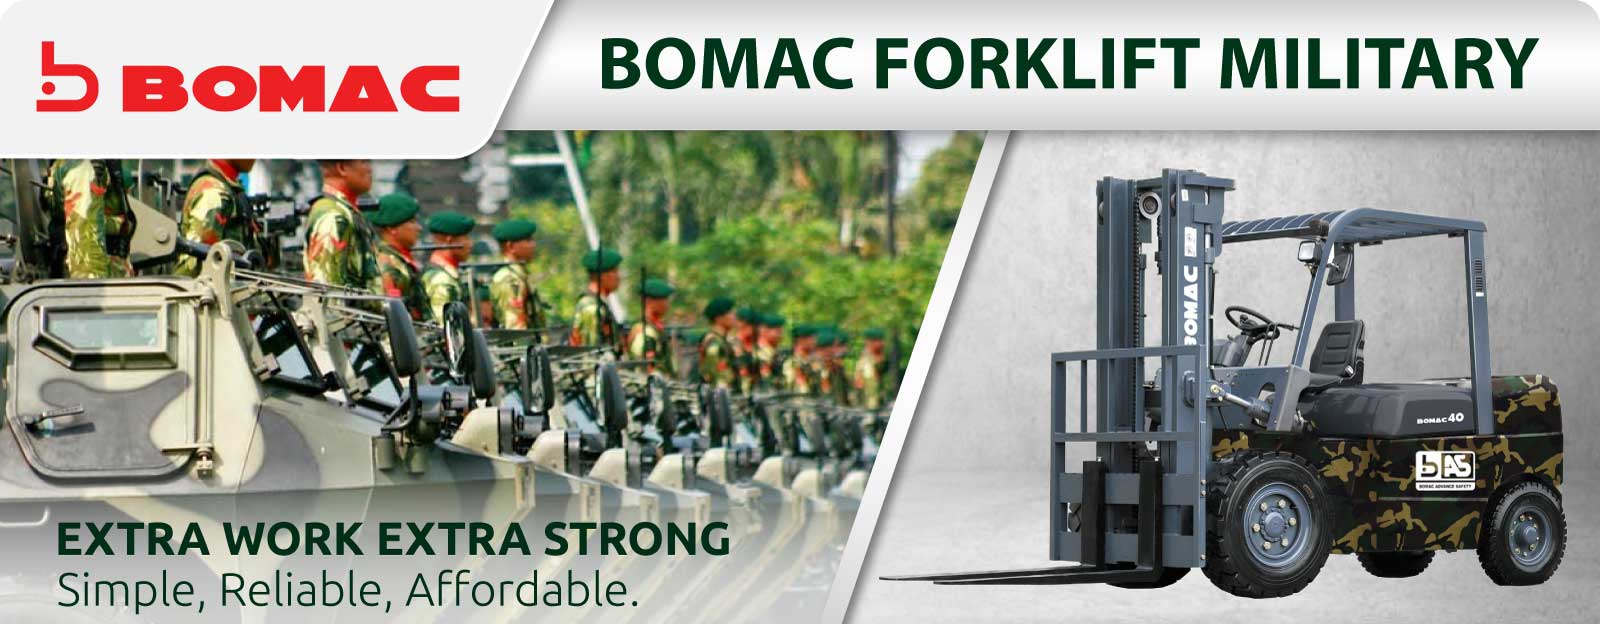 Bomac Forklift Banner Product